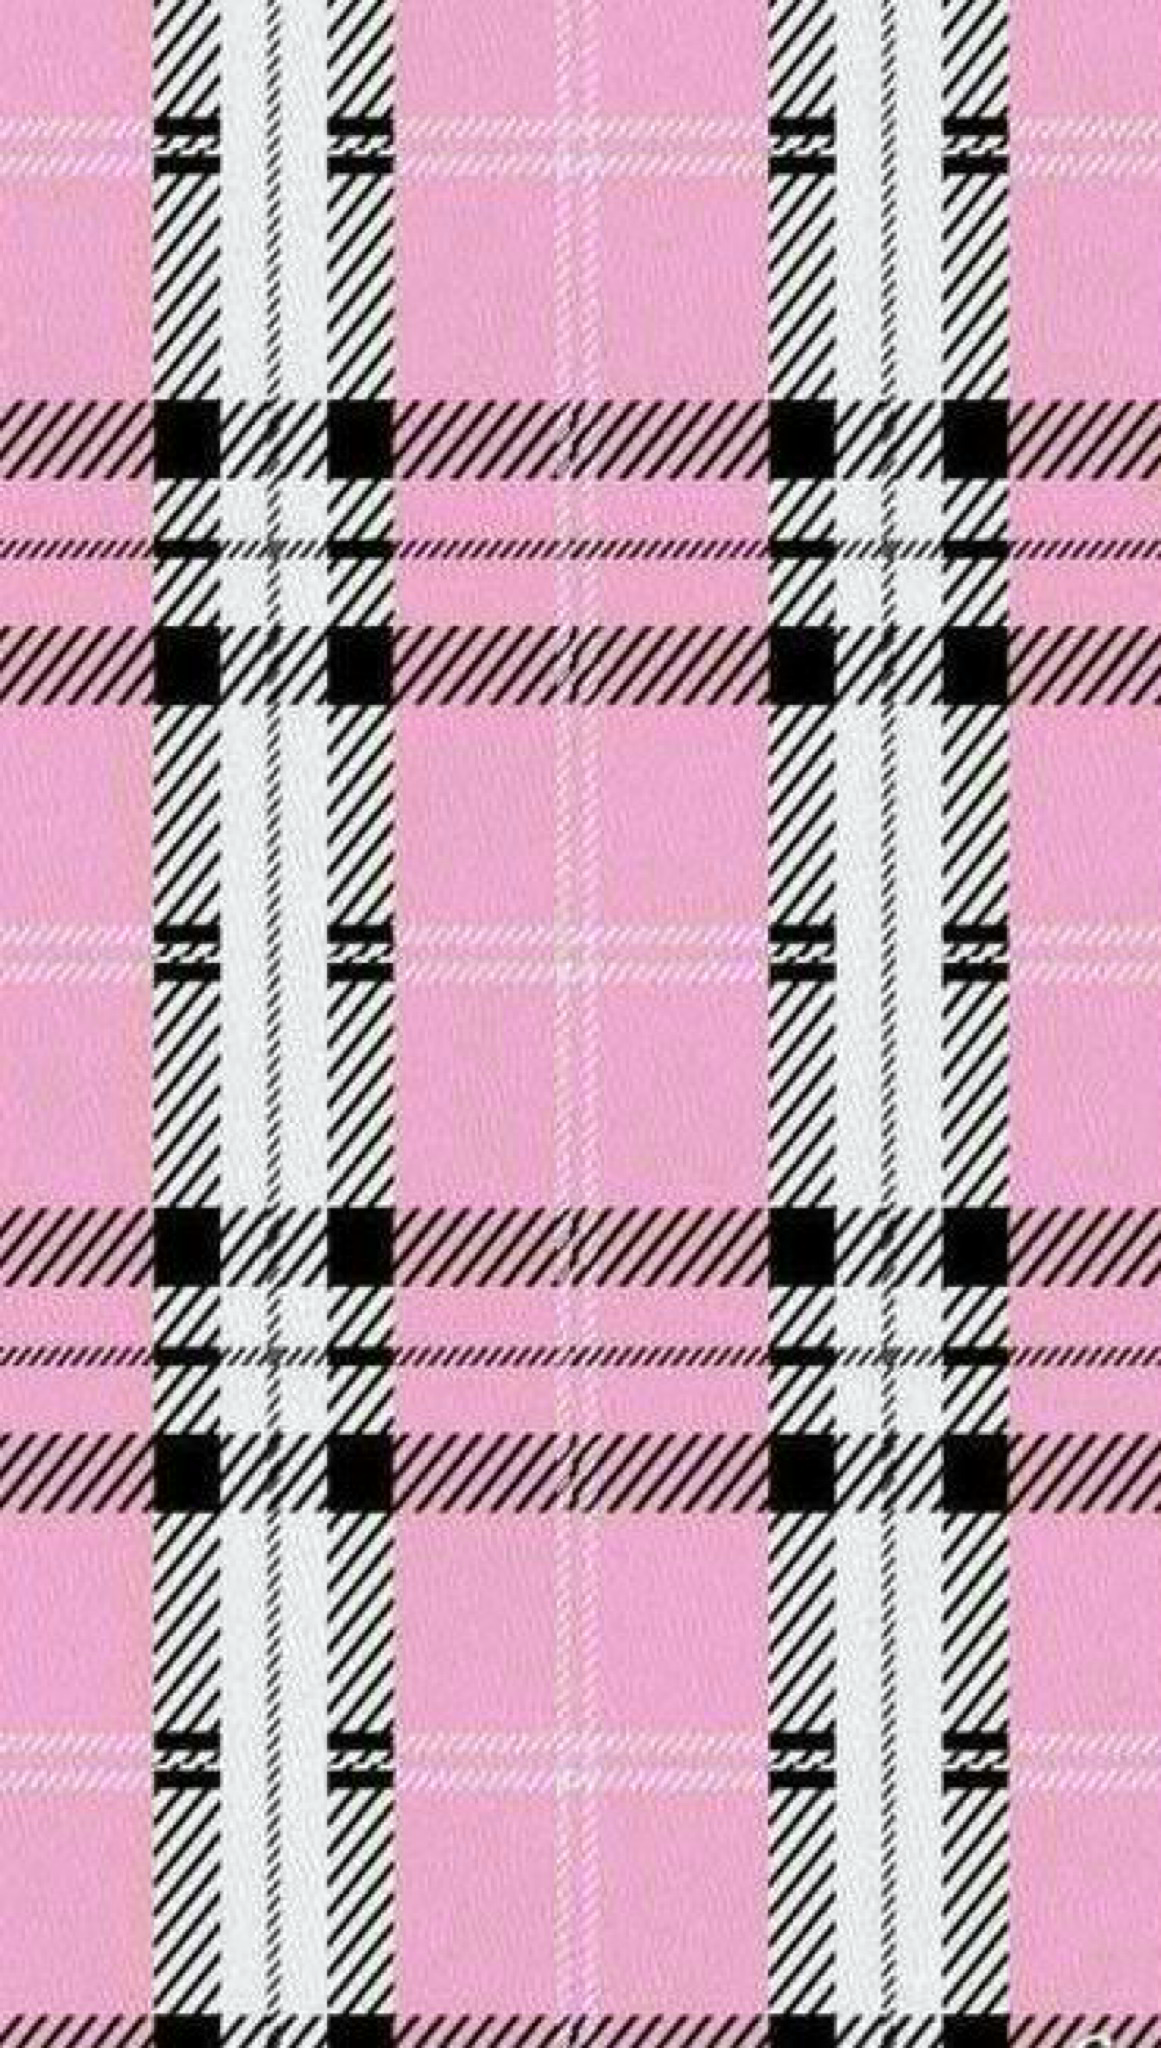 Wildflower Pink Plaid Phone Case for Wallpaper Iphone 1161x2048